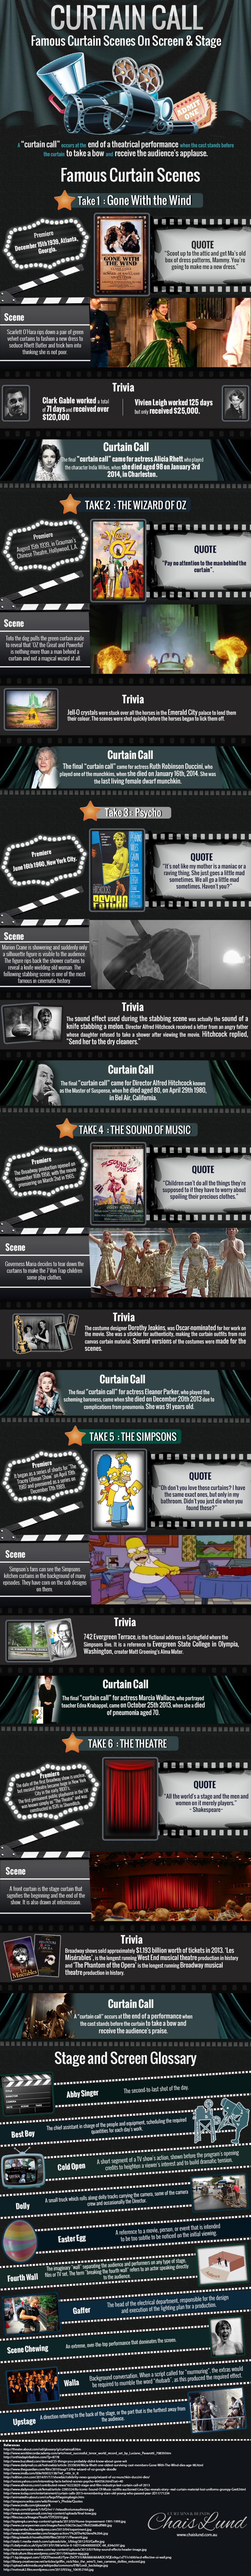 Curtain Call: Famous Curtain Scenes on Screen and Stage Infographic